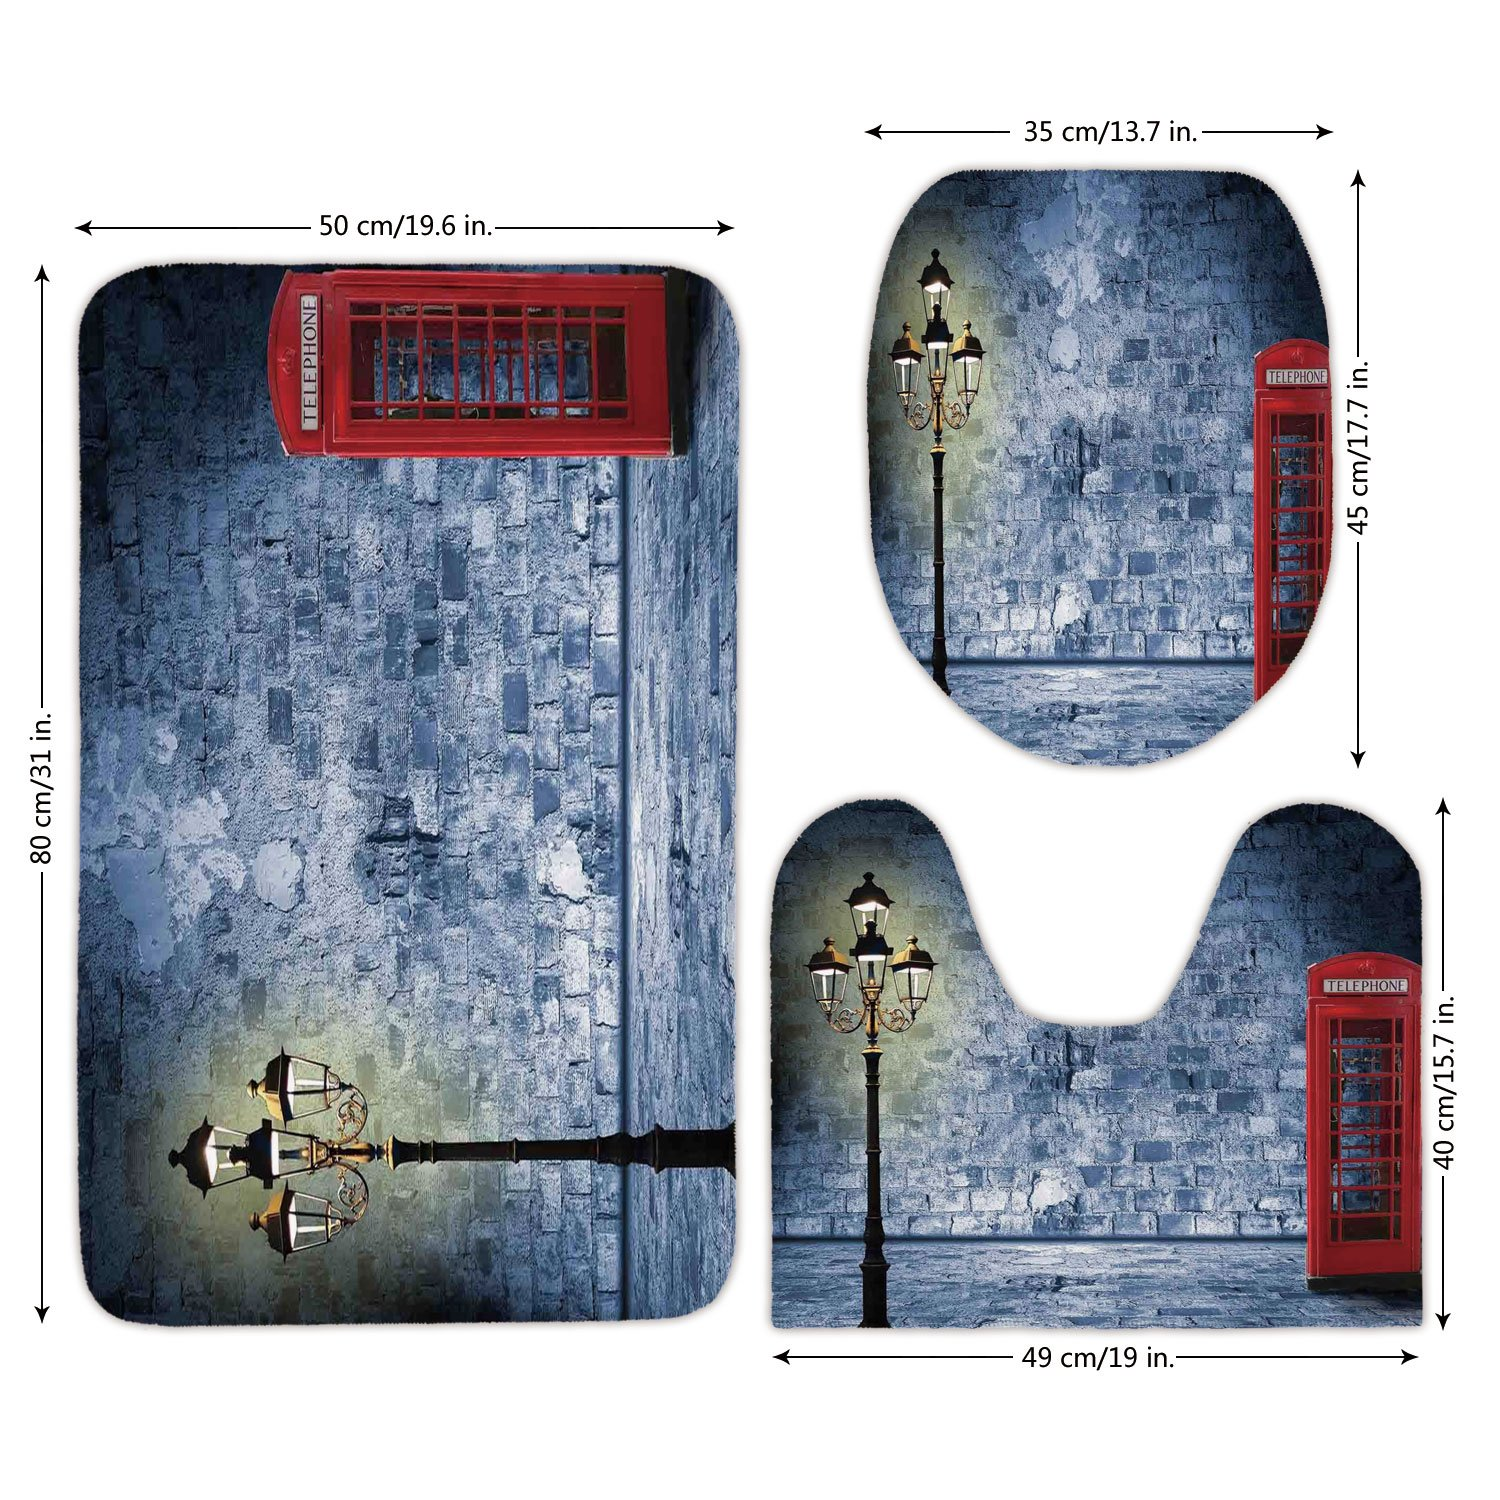 3 Piece Bathroom Mat Set,Lantern,Vintage Scene with Brick Wall and British Phone Box in Dark Scary Night Twilight Painting Decorative,Gey Red,Bath Mat,Bathroom Carpet Rug,Non-Slip